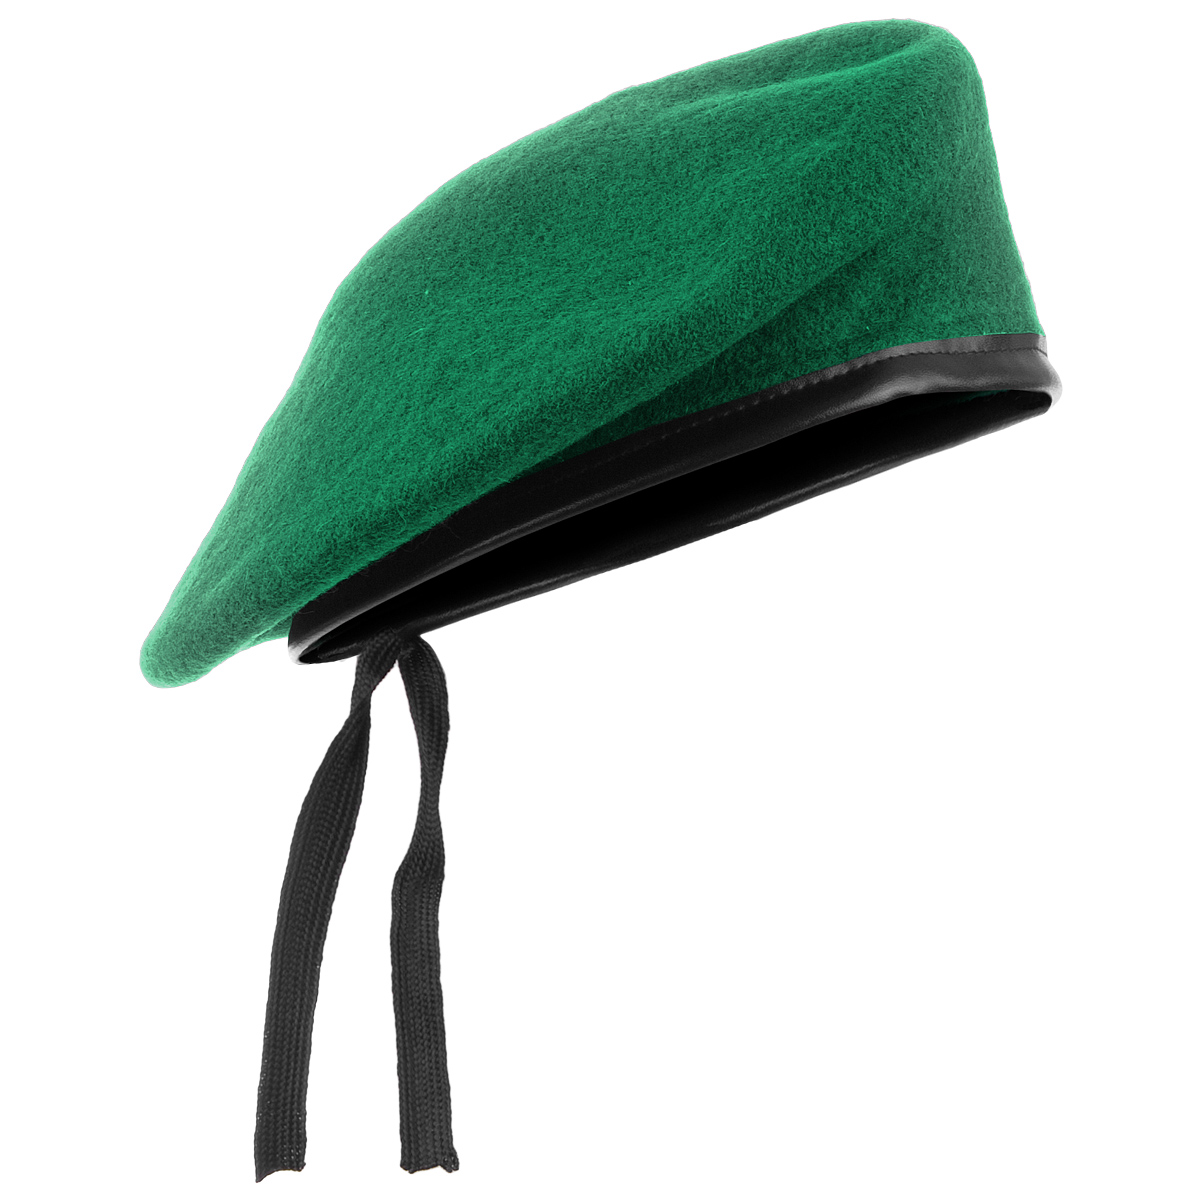 Green Wool Beret Cap New Military Style Hat